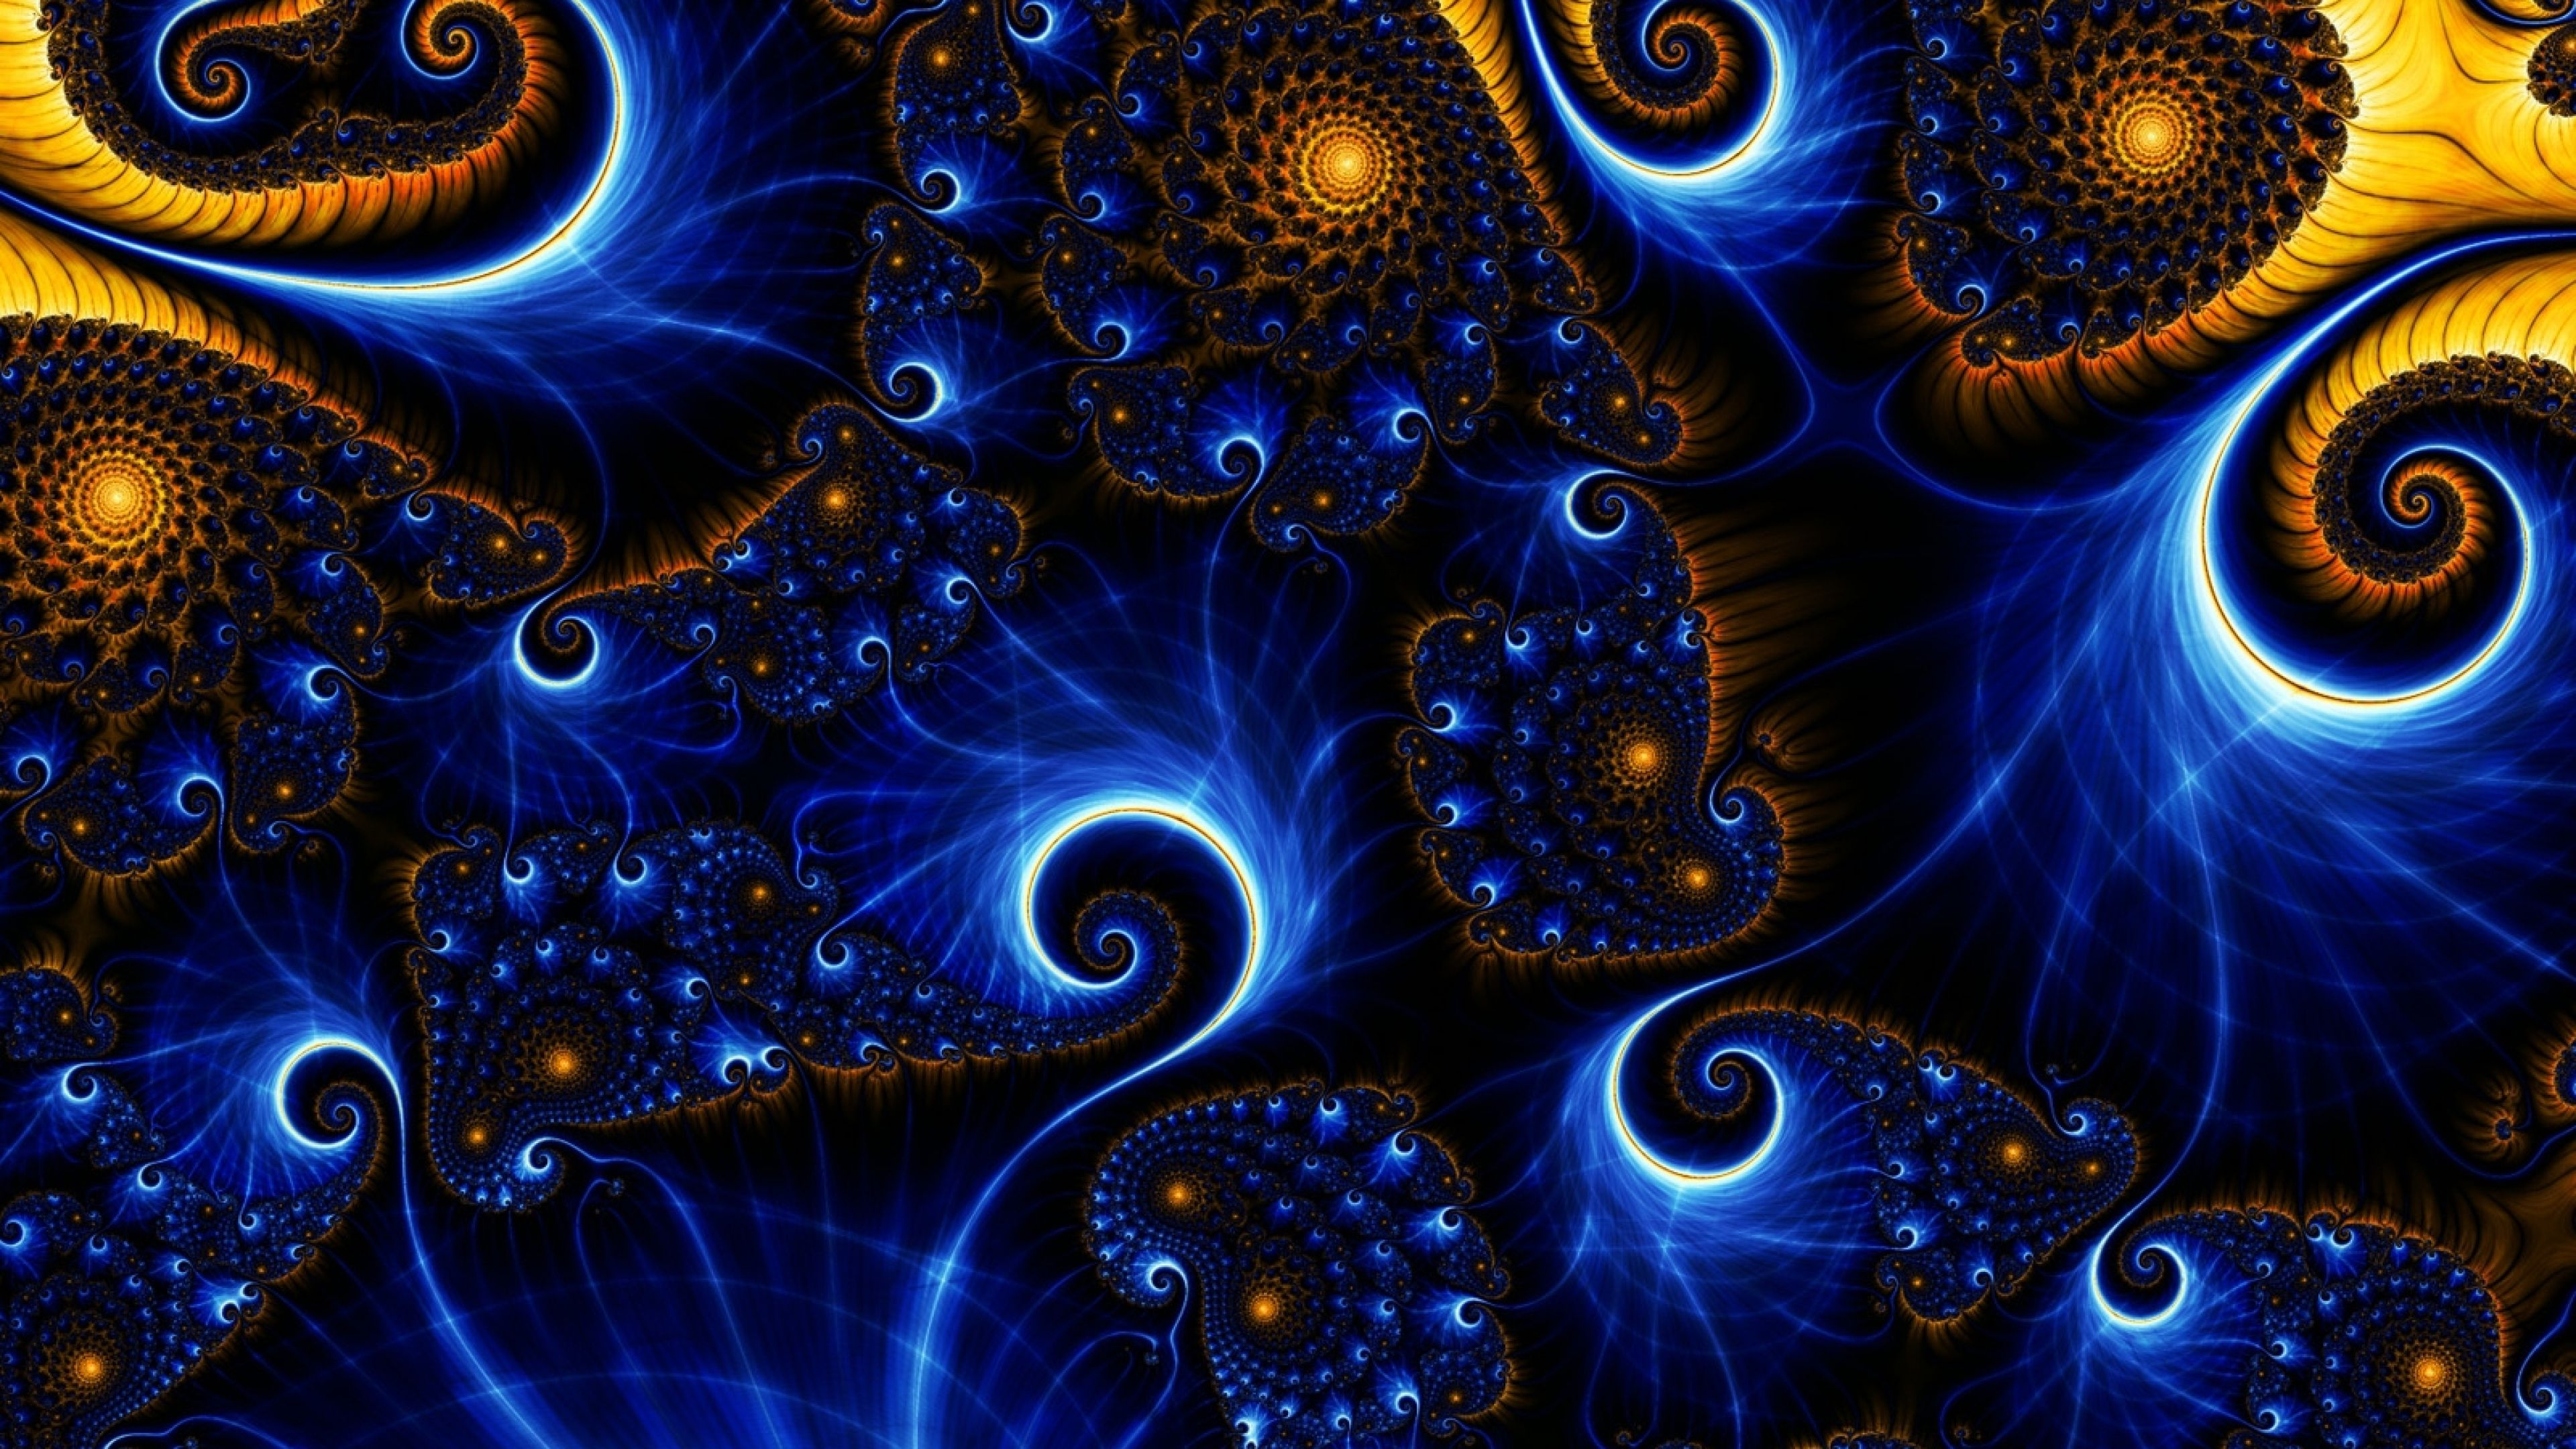 4K Ultra HD Fractal Wallpapers HD, Desktop Backgrounds 3840x2160 ... | Fractals in 2019 ...